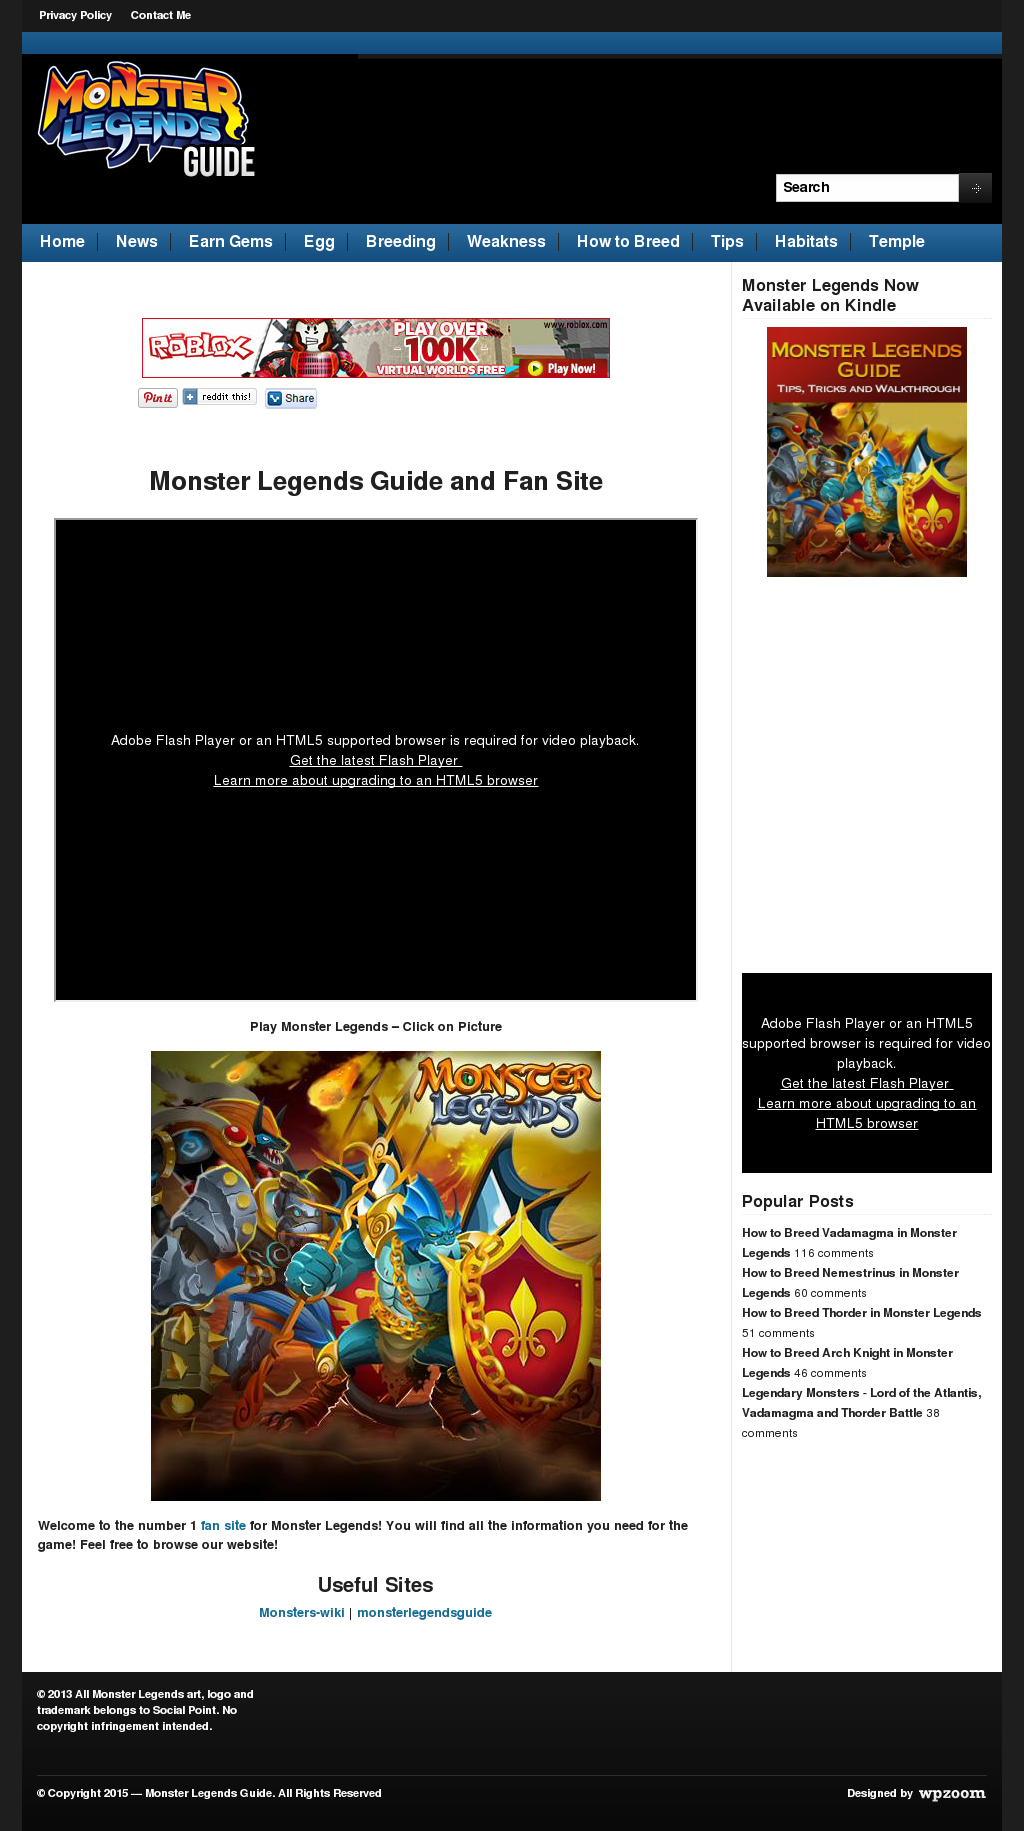 Monster Legends Guide Competitors, Revenue and Employees